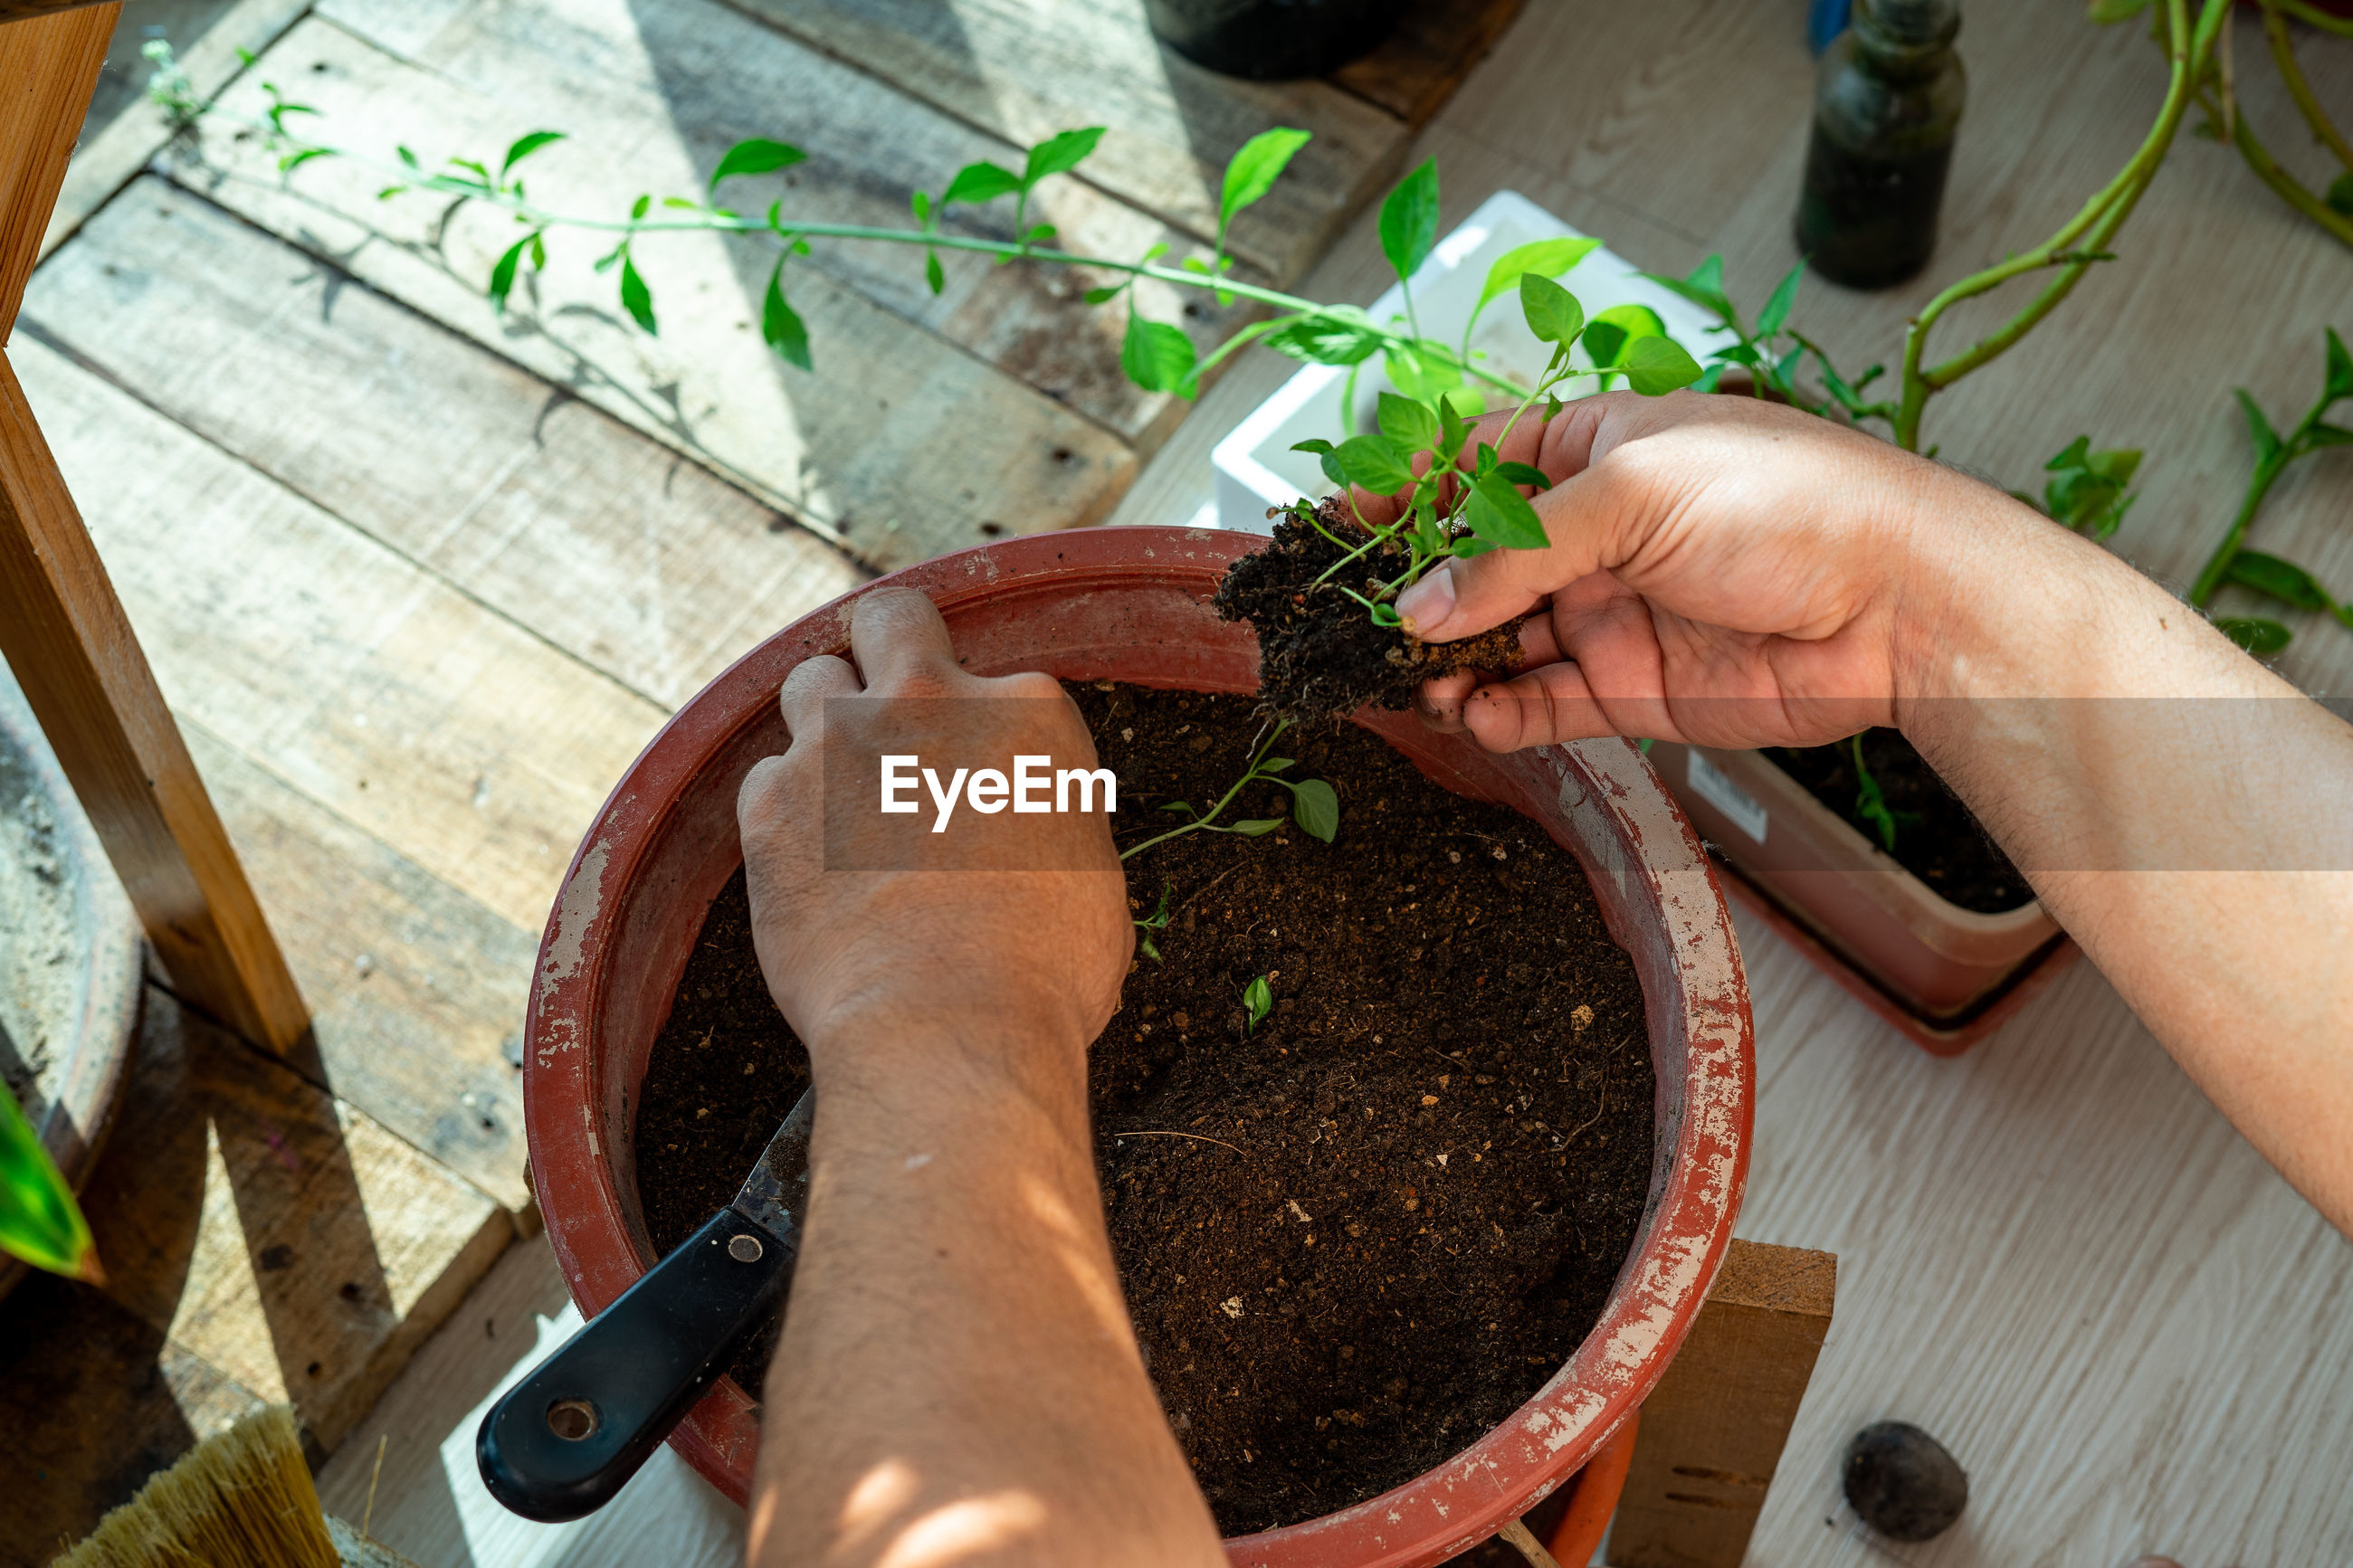 HIGH ANGLE VIEW OF PERSON HAND HOLDING PLANT